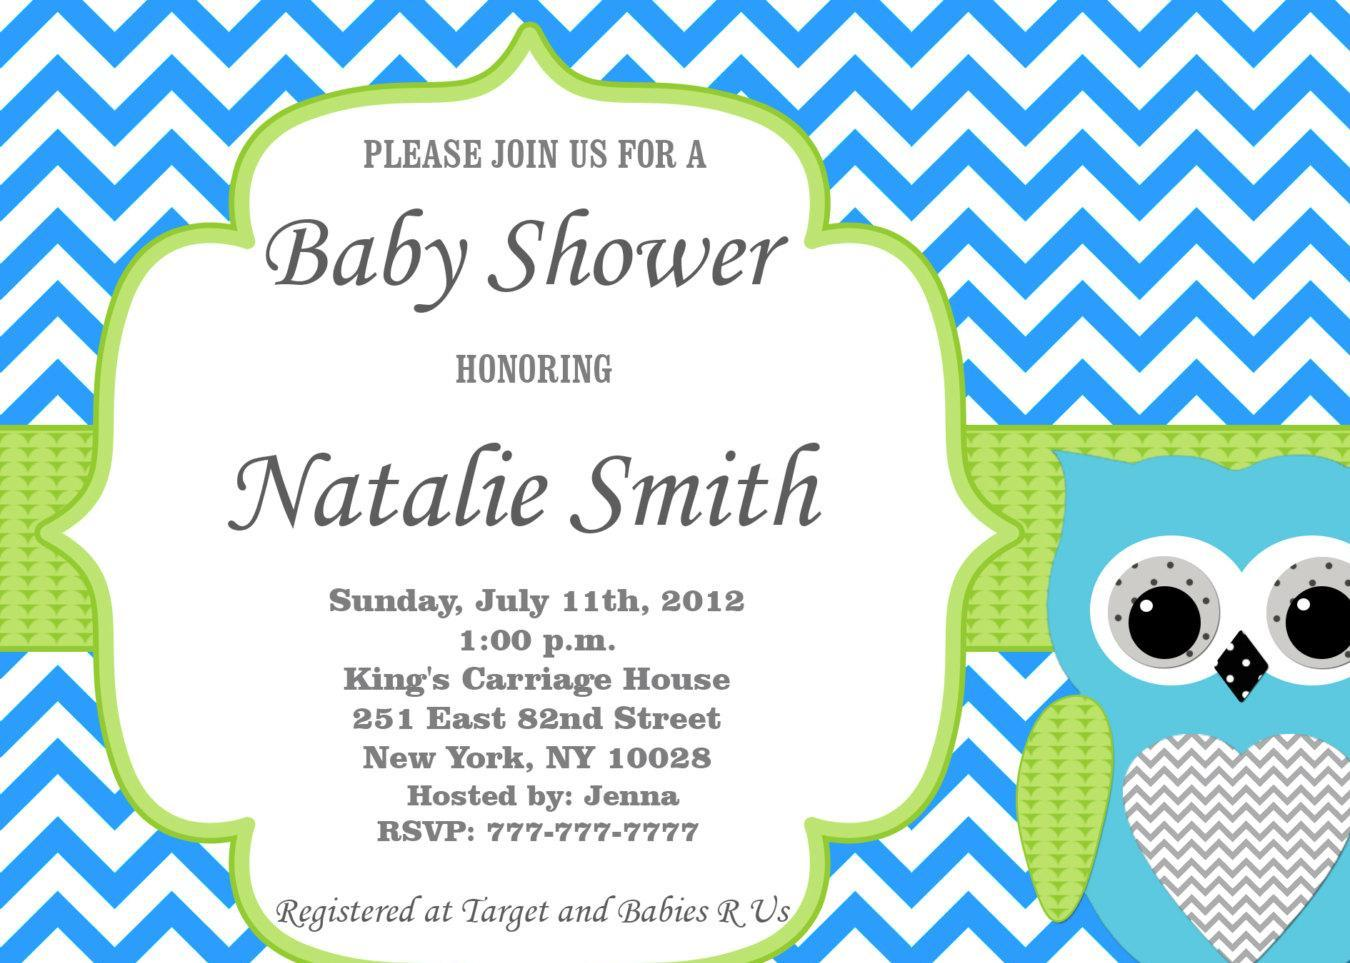 office baby shower invitation template - Etame.mibawa.co